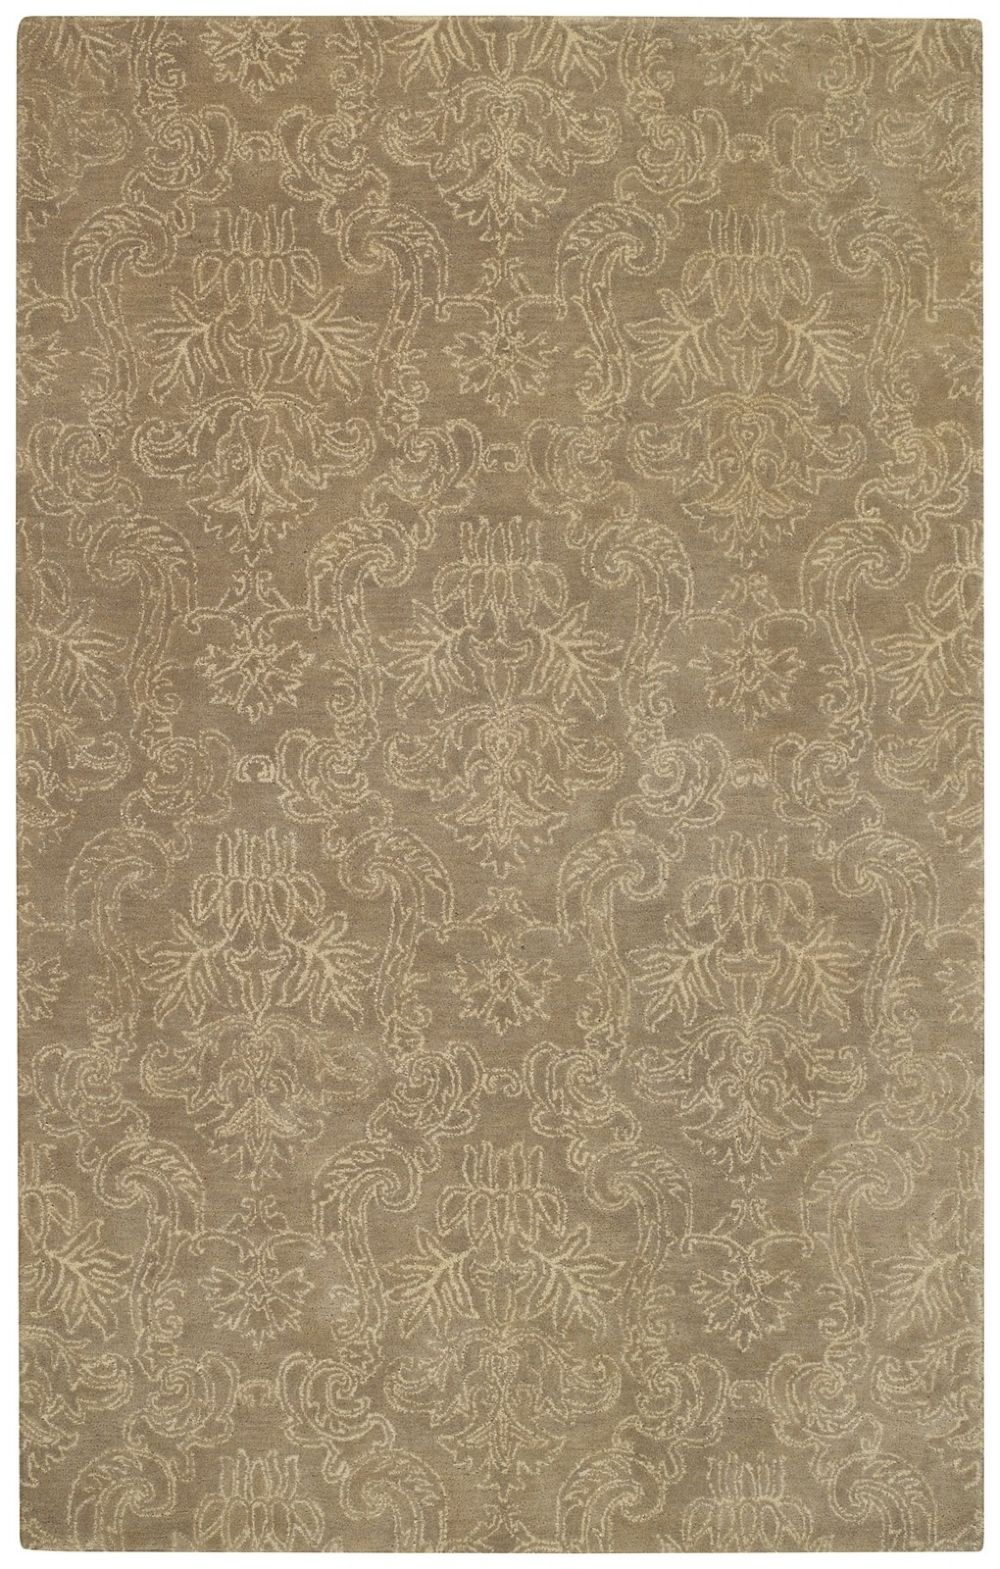 capel flower garden transitional area rug collection